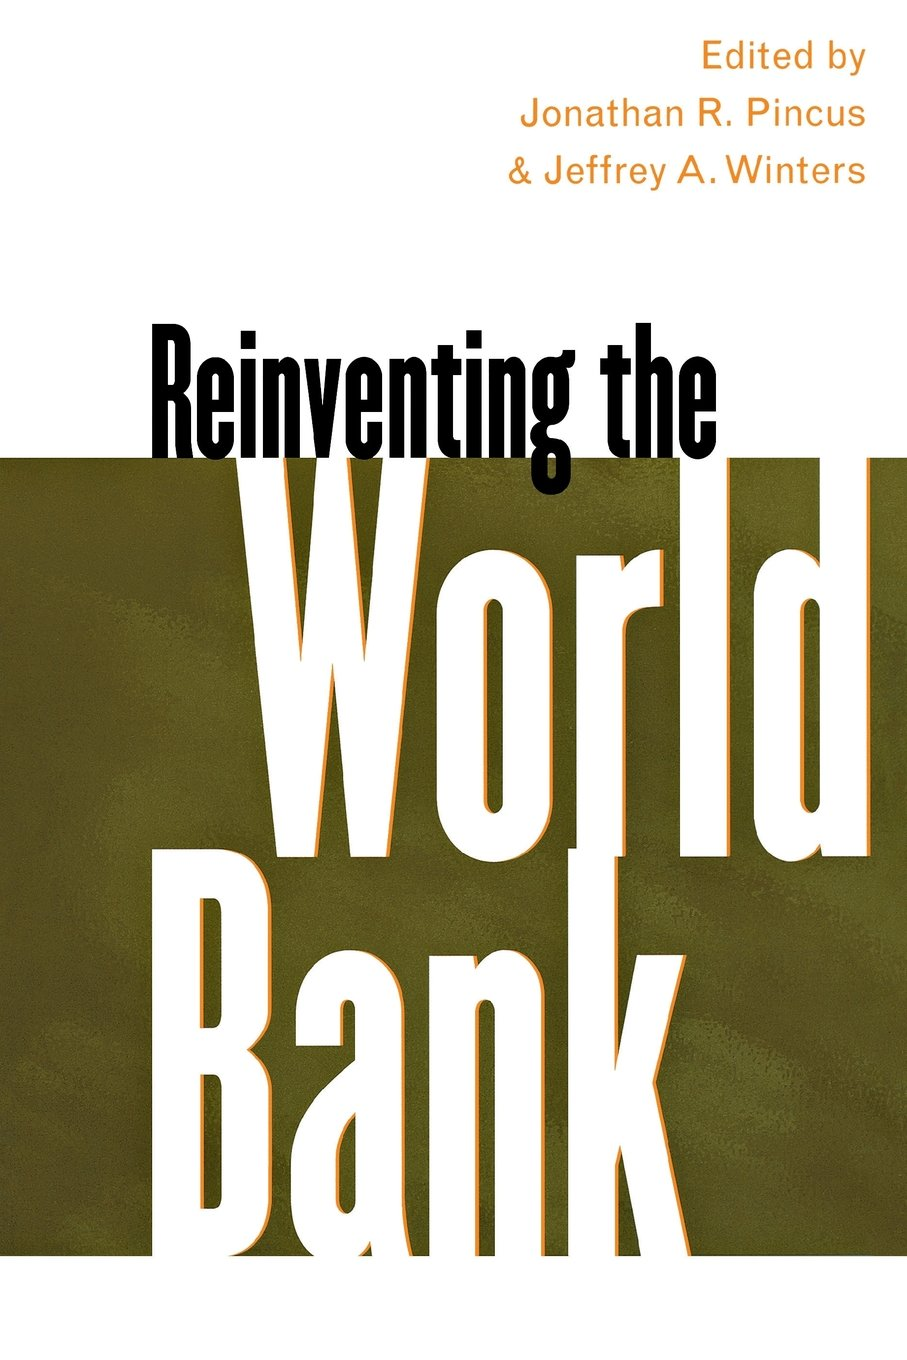 Download Reinventing the World Bank PDF